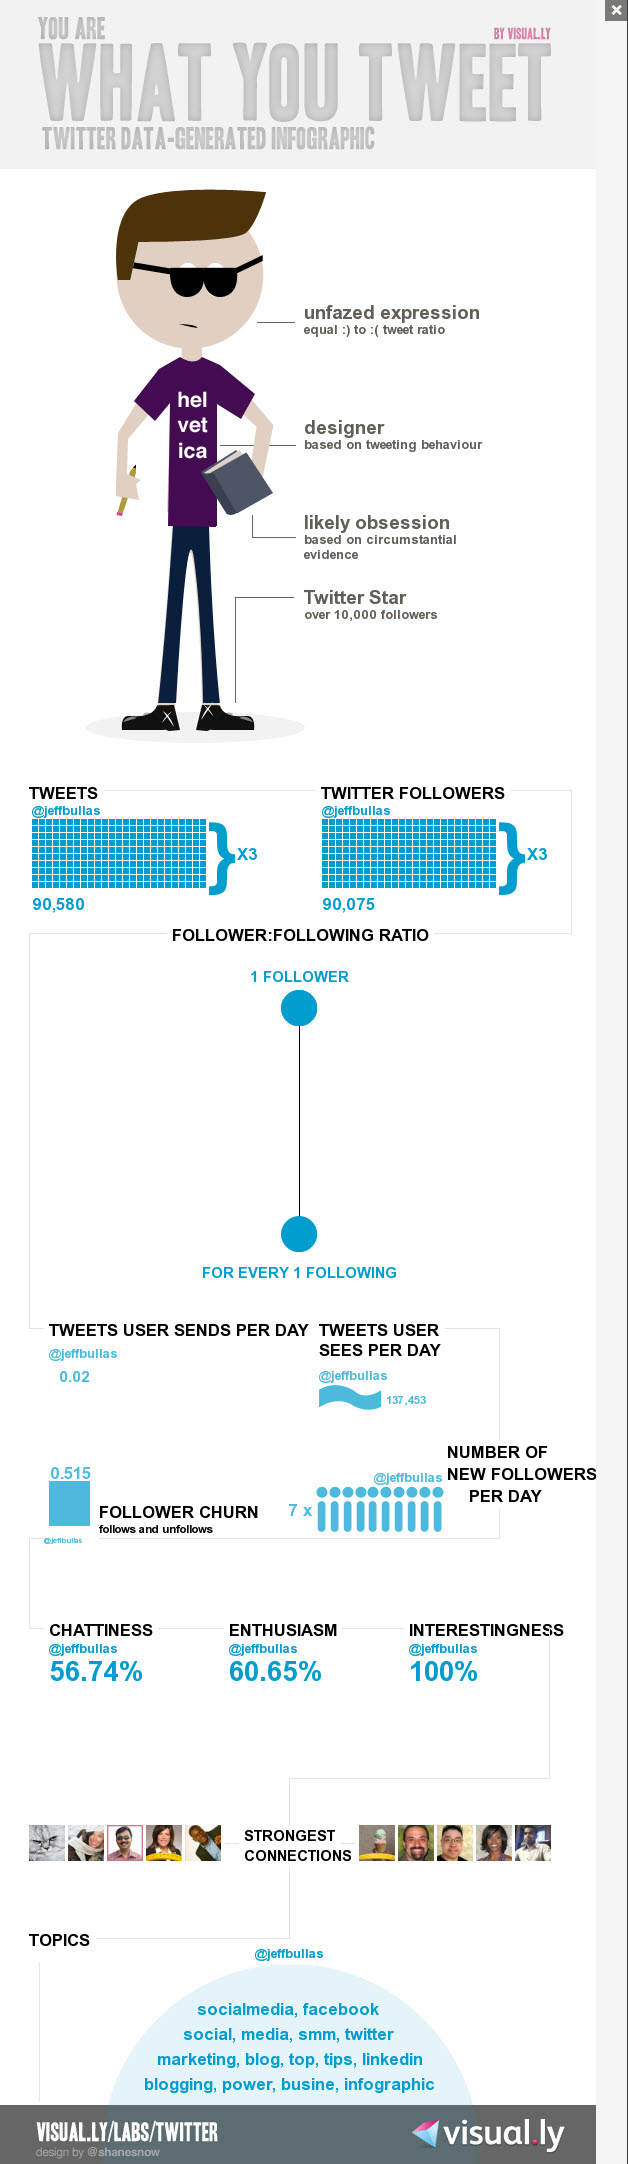 Jeffs Twitter Infographic